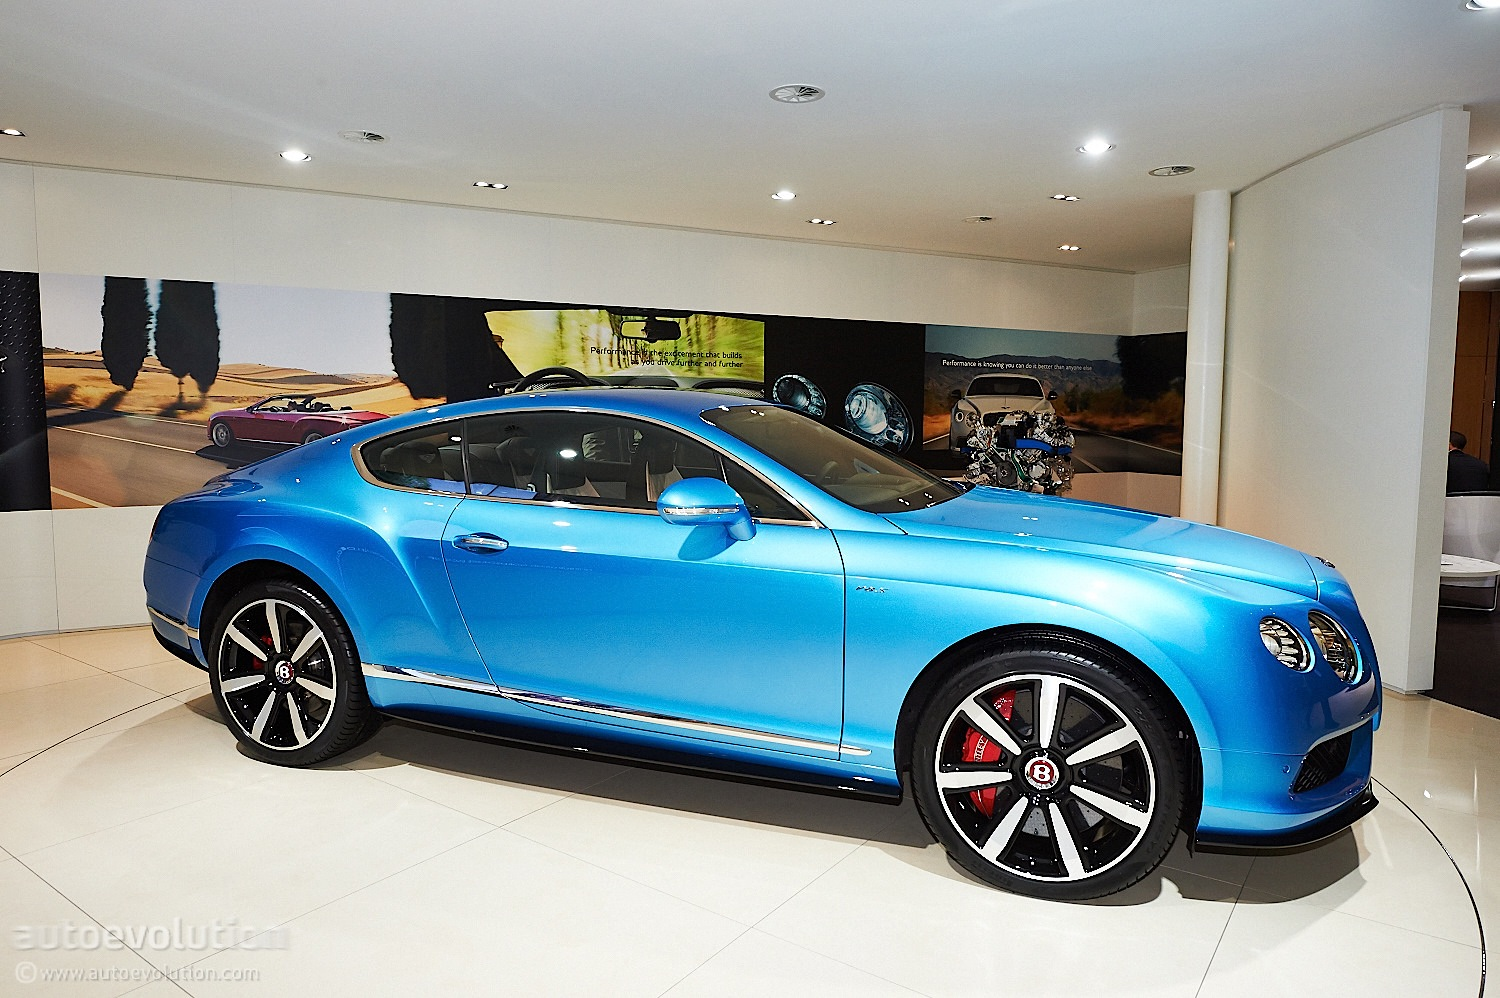 bentley continental gt gumtree with 2014 Bentley Continental Gt Reviews And Rating Motor Trend on 1188342141 moreover New Saab Cars For Sale Dan Saab Convertible Cars For Sale Uk moreover 2017 Toyota Rv4 besides Bentley Green additionally Dpe Wheels For Sale.